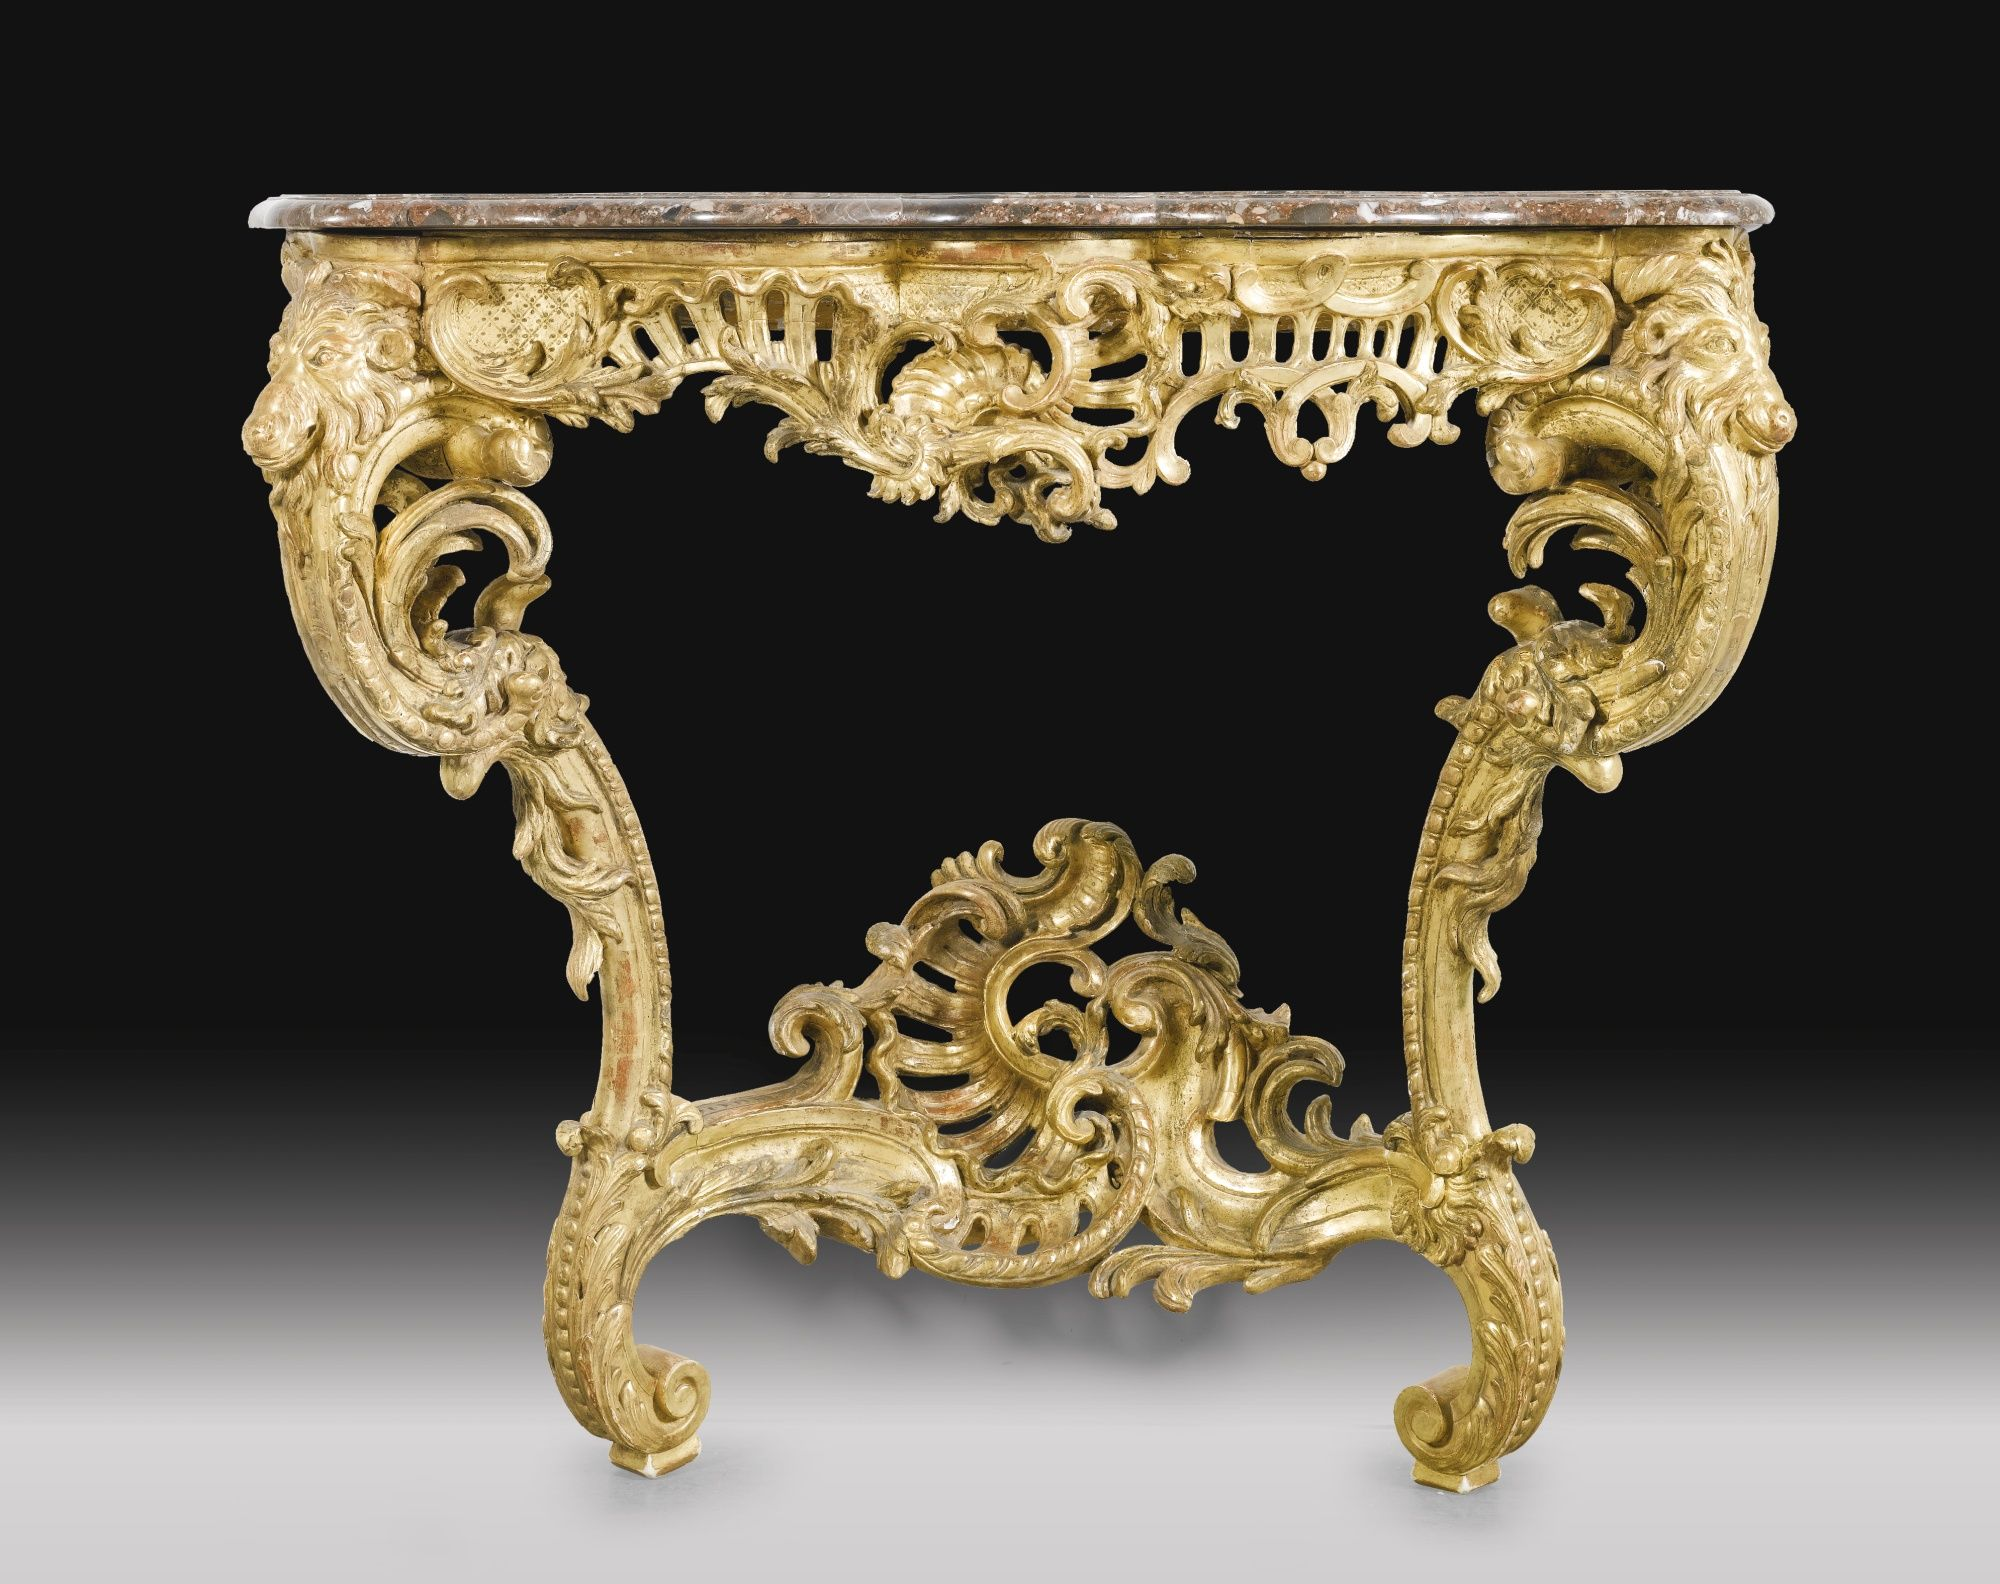 A carved giltwood console table louis xv mid 18th century a carved giltwood console table louis xv mid century geotapseo Images